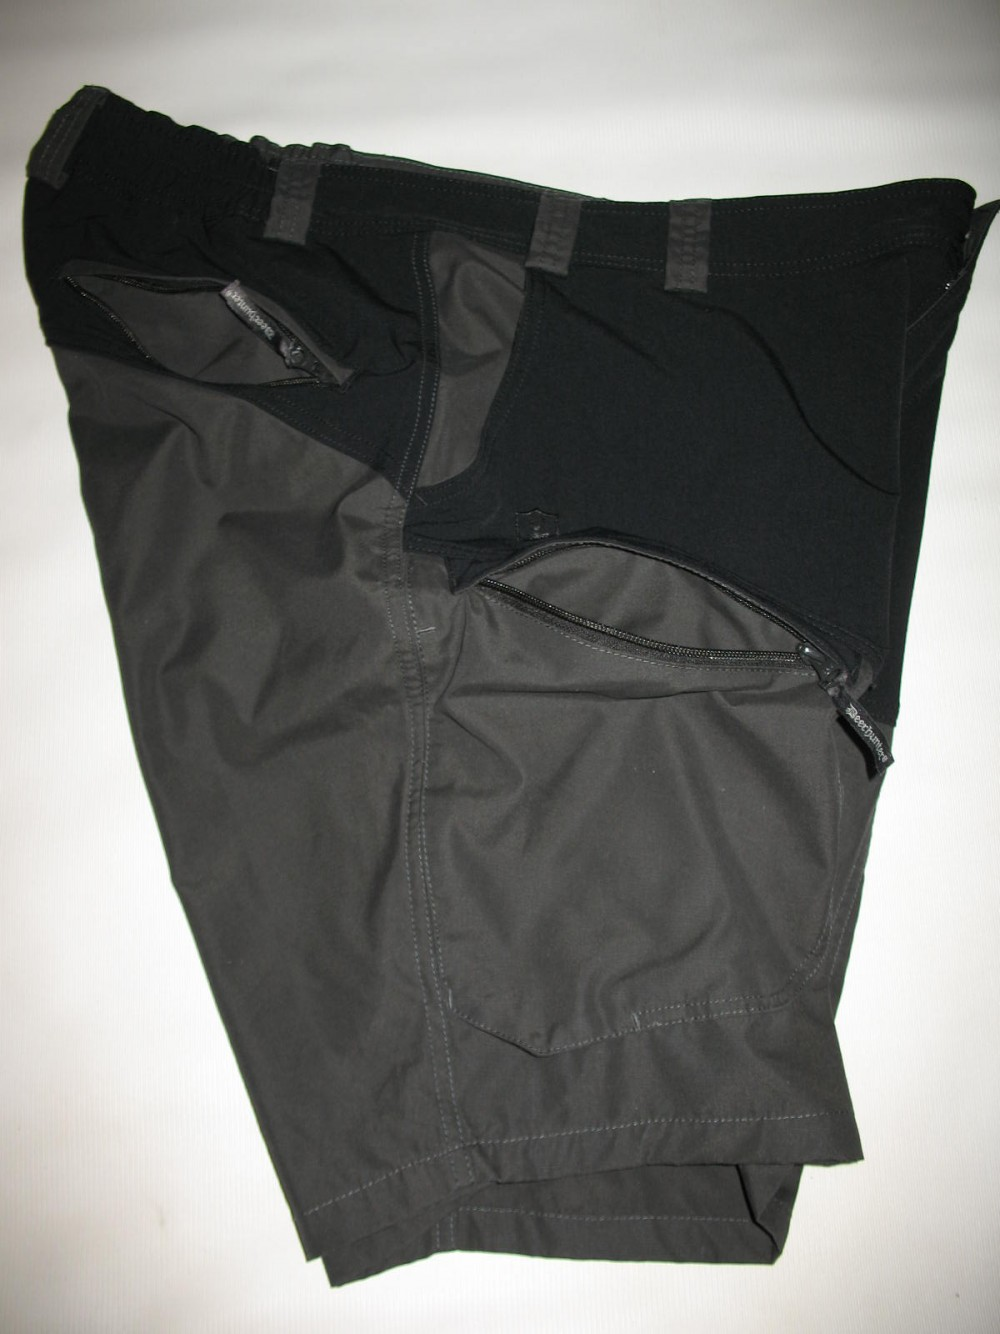 Шорты DEERHUNTER strike shorts (размер 60-XXL/XXXL) - 5